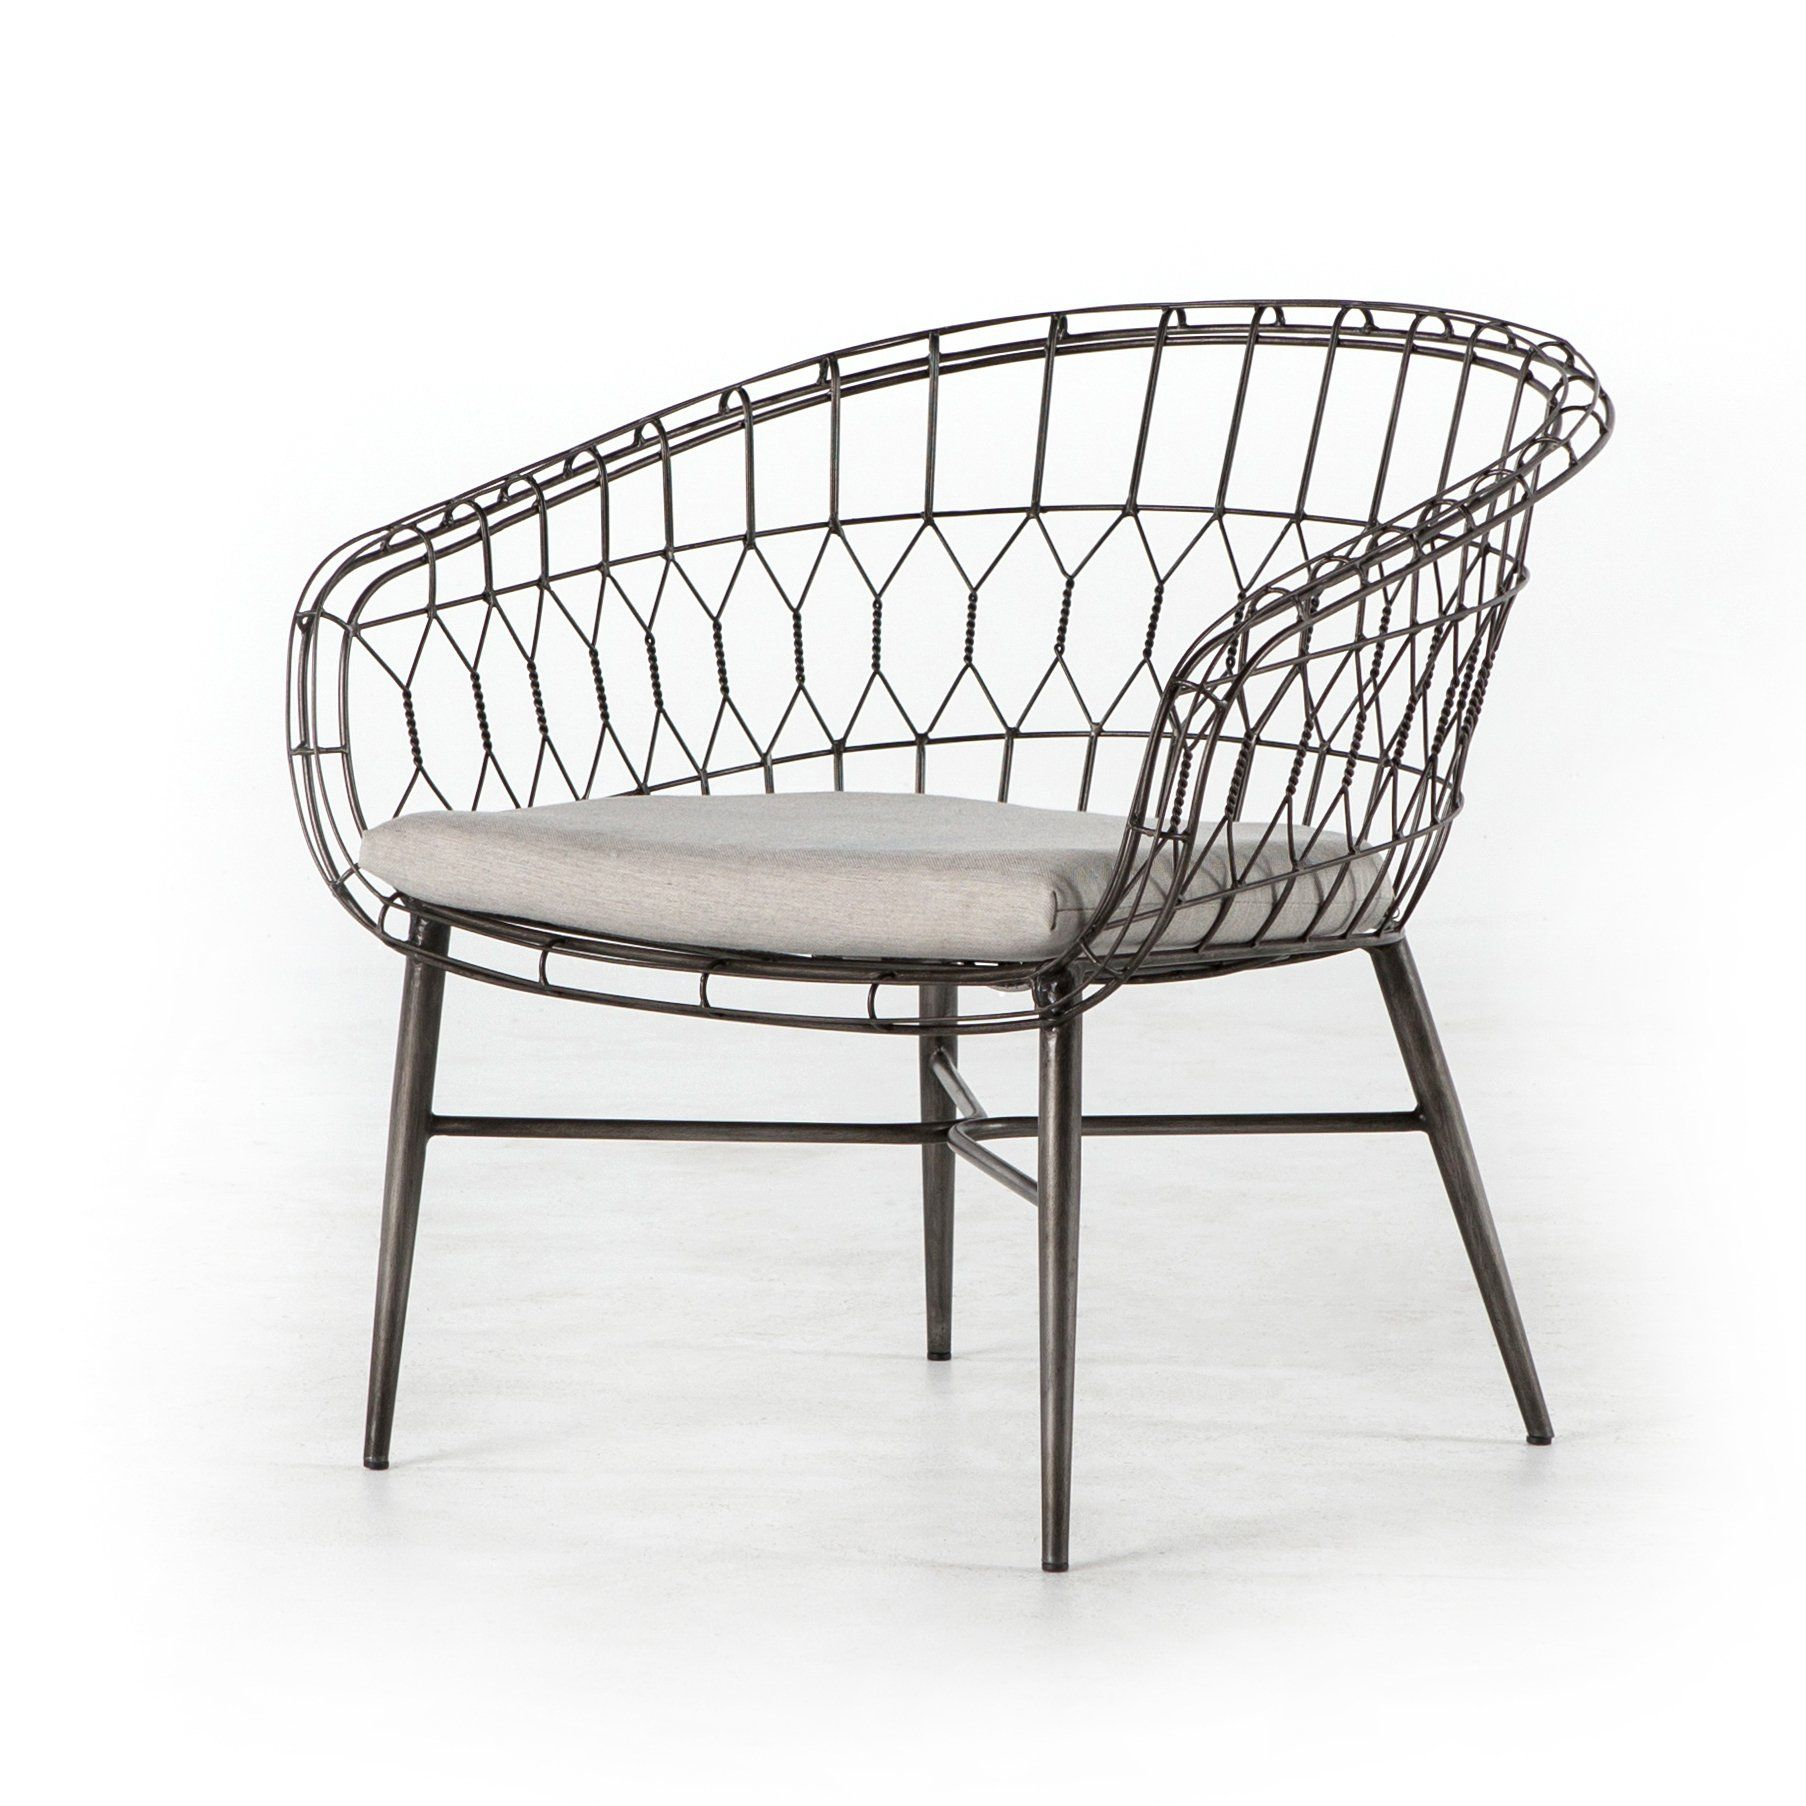 Silvia outdoor occasional chair